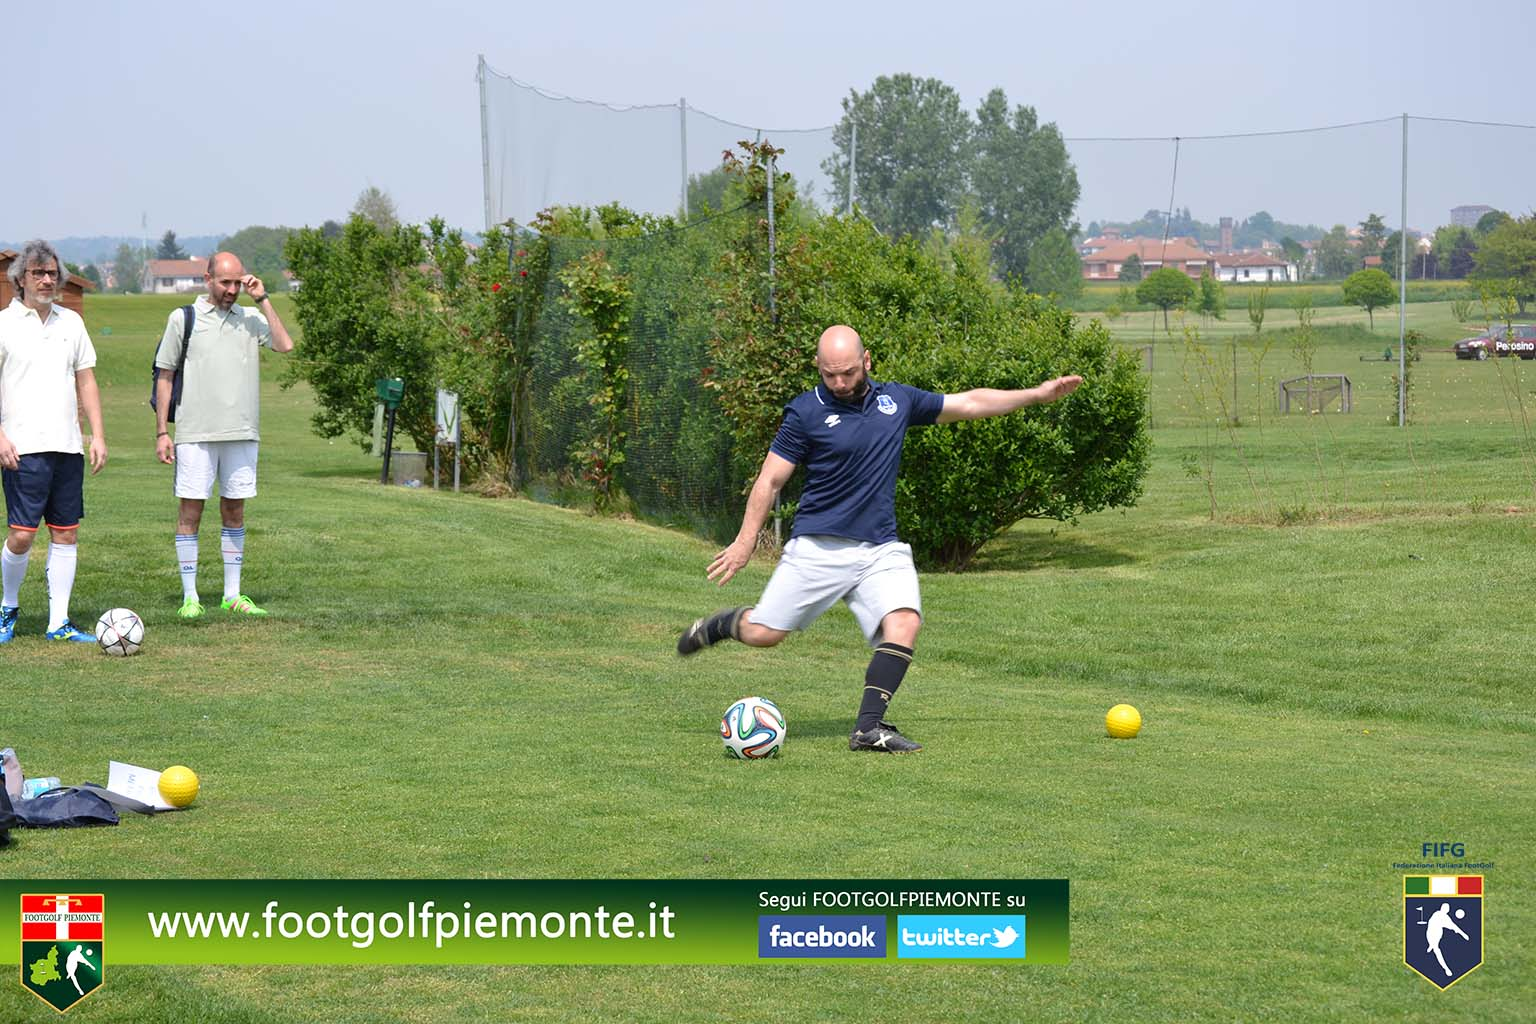 FOTO 9 Regions' Cup Footgolf Piemonte 2016 Golf Città di Asti (At) 30apr16-35